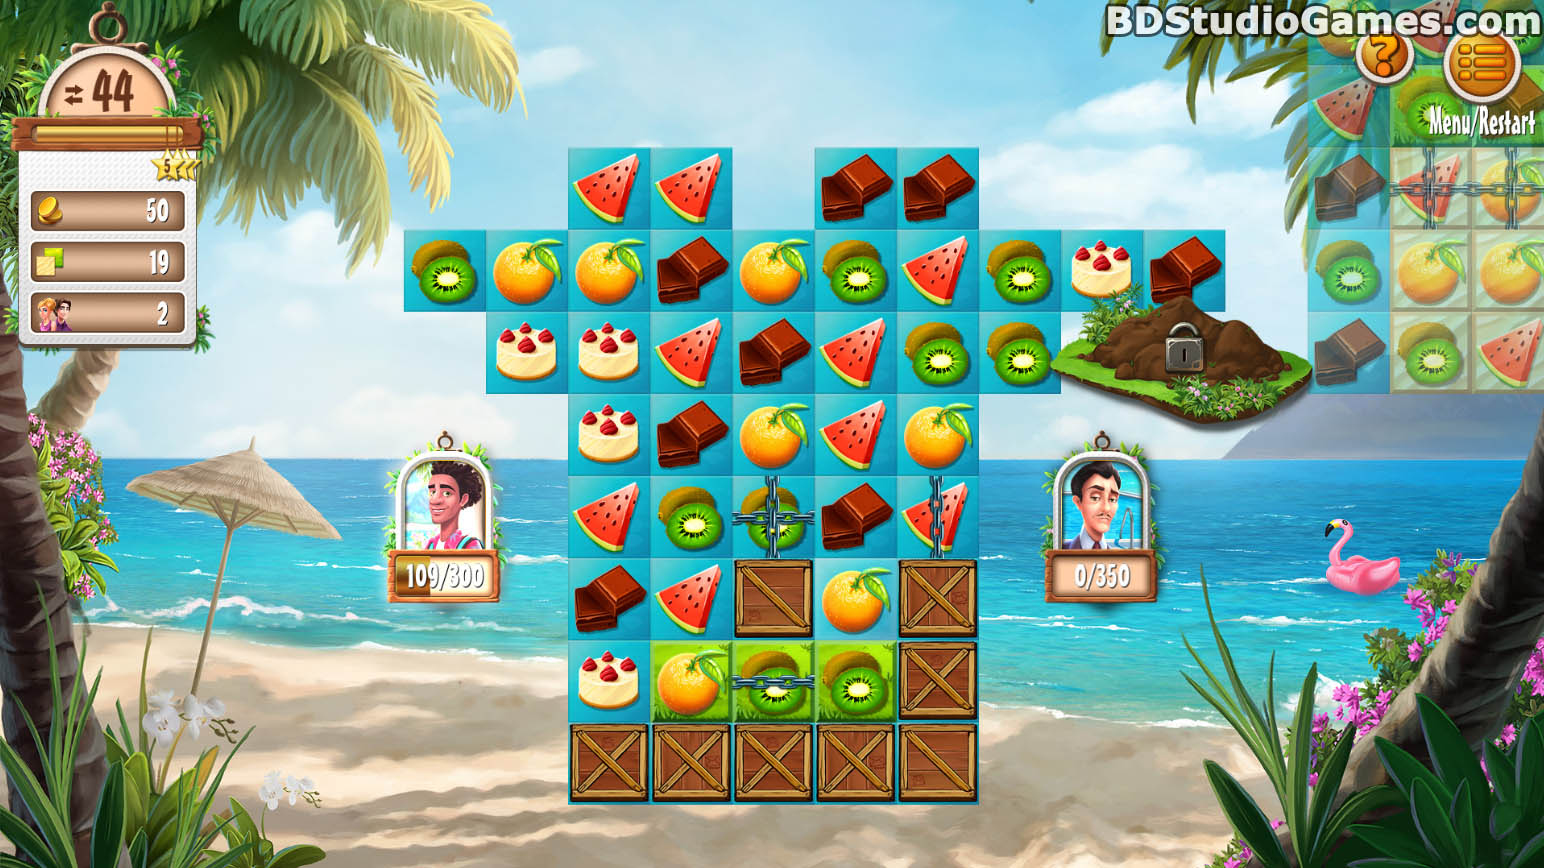 5 Star Miami Resort Trial Version Free Download Full Version Buy Now Screenshots 06